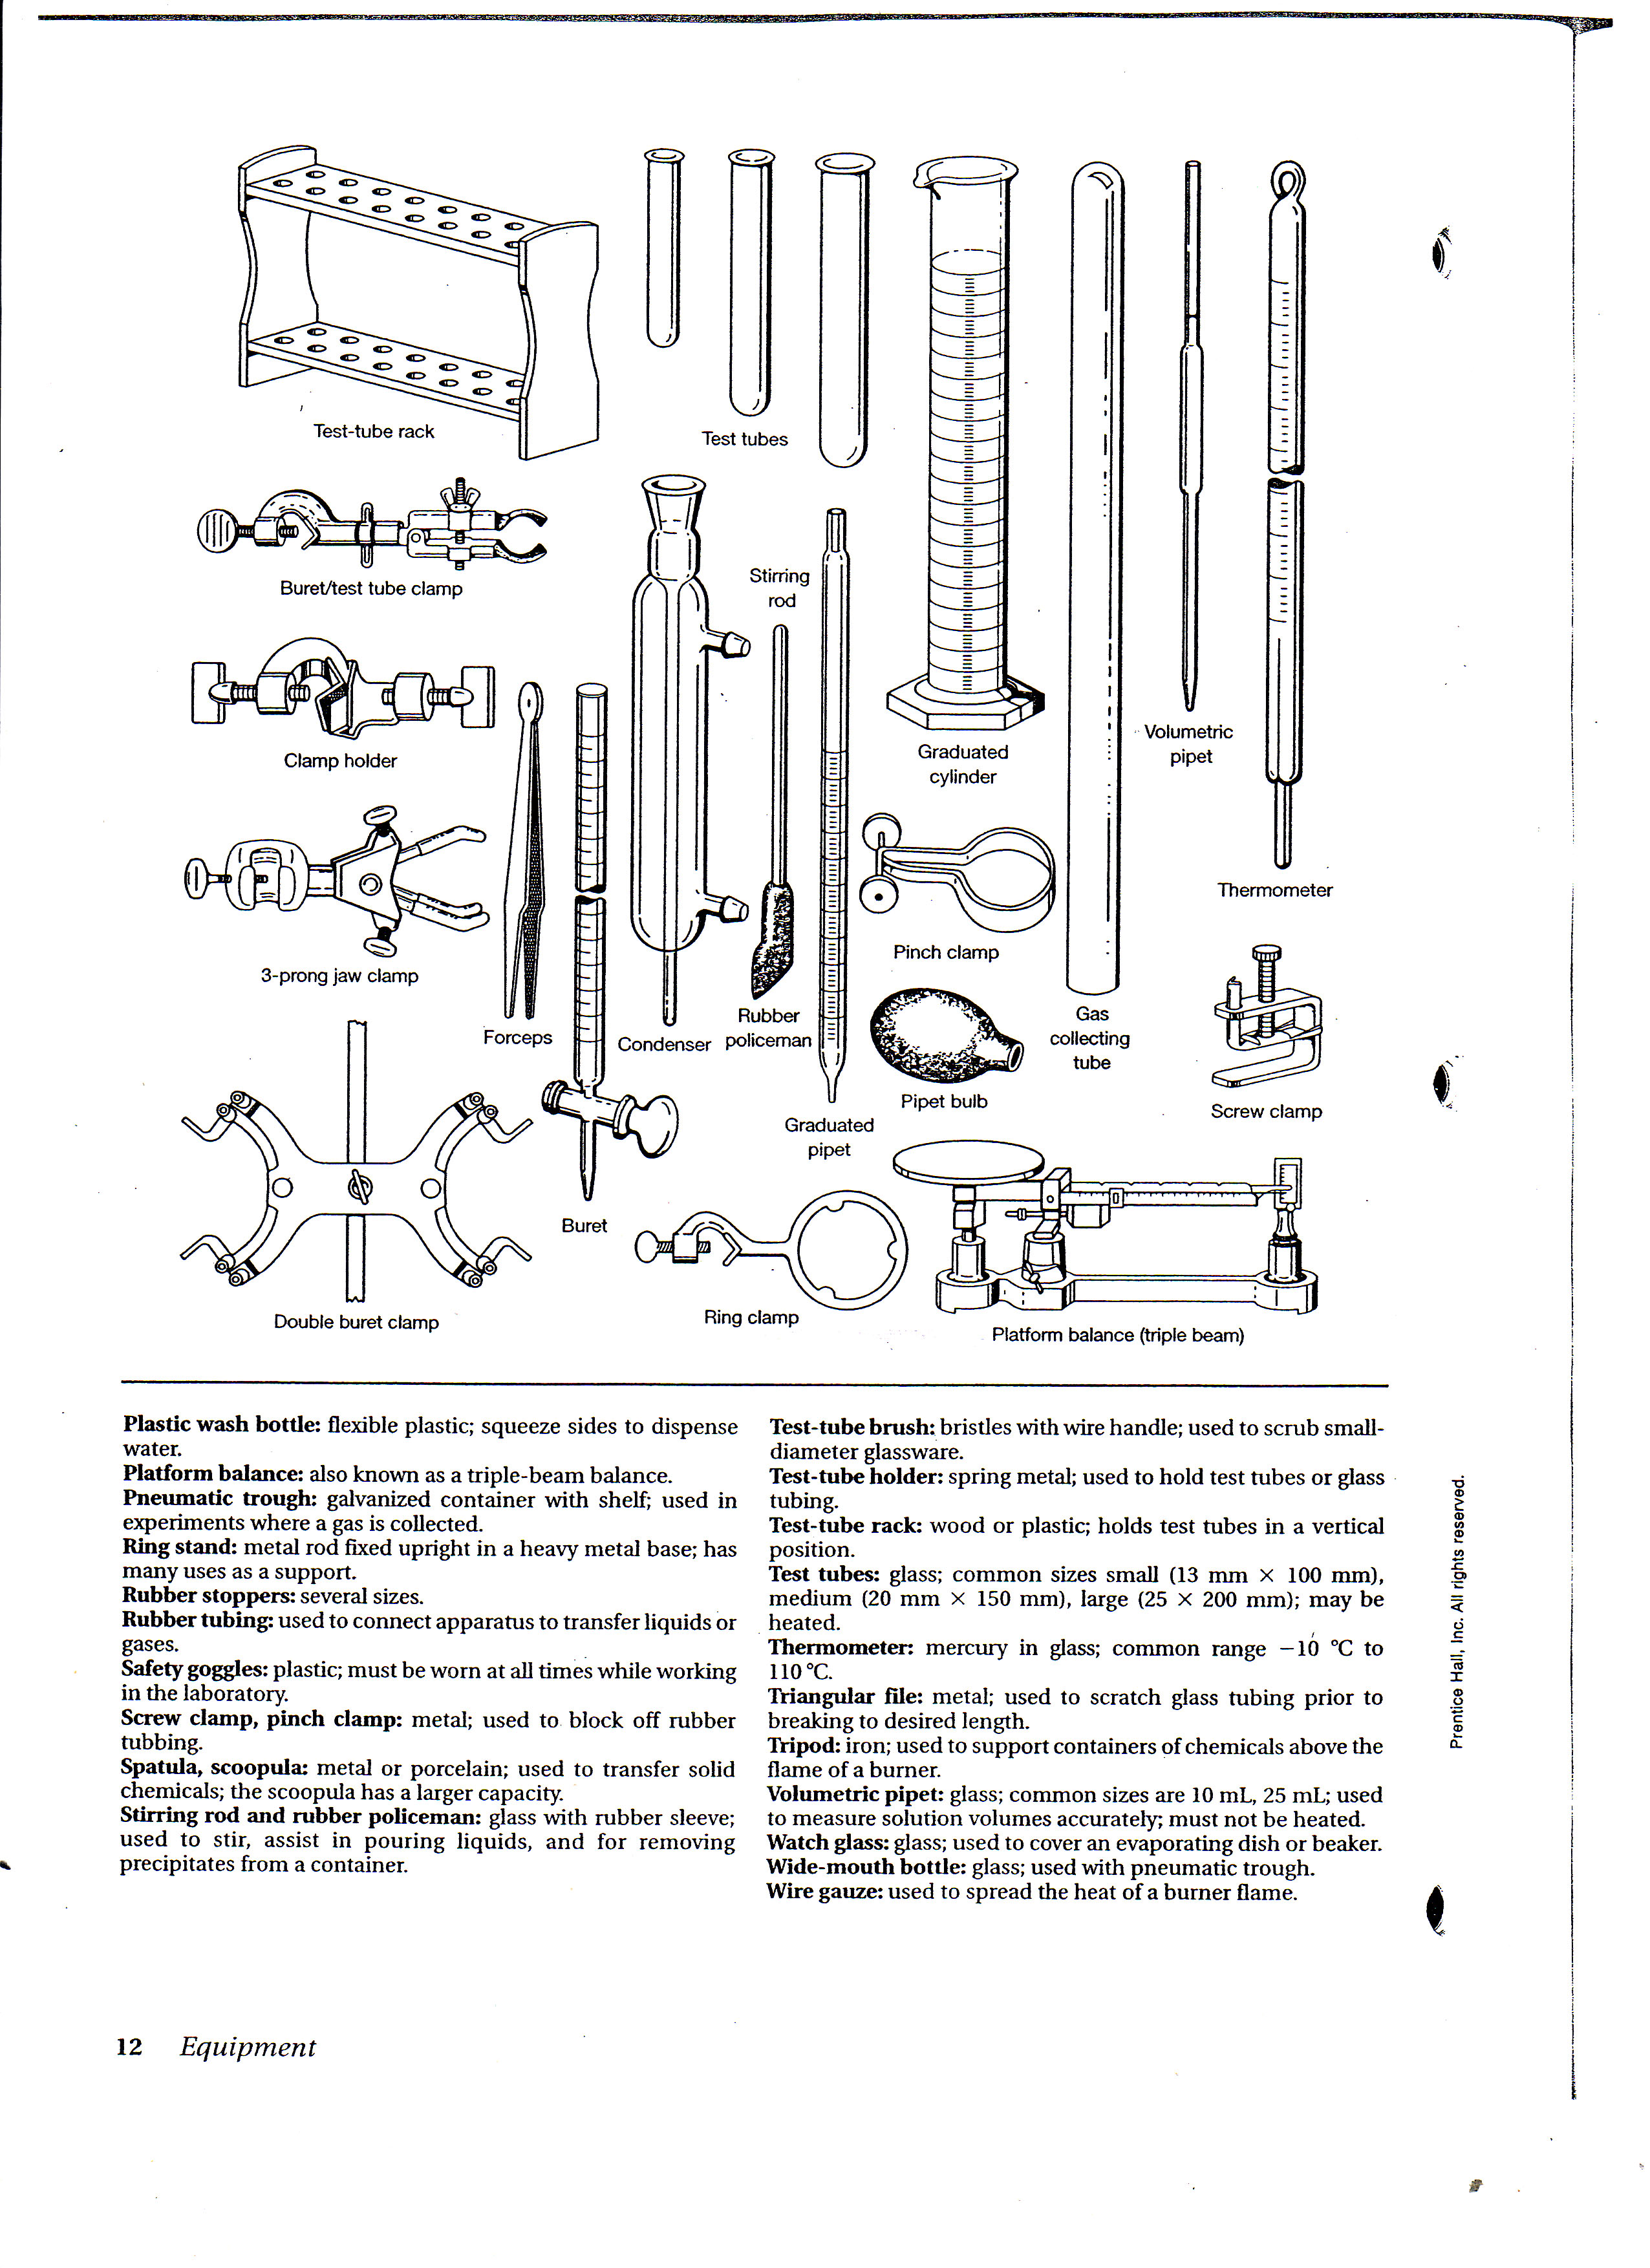 Tiffany tam handouts for the lab equipment and safety symbols reference sheets buycottarizona